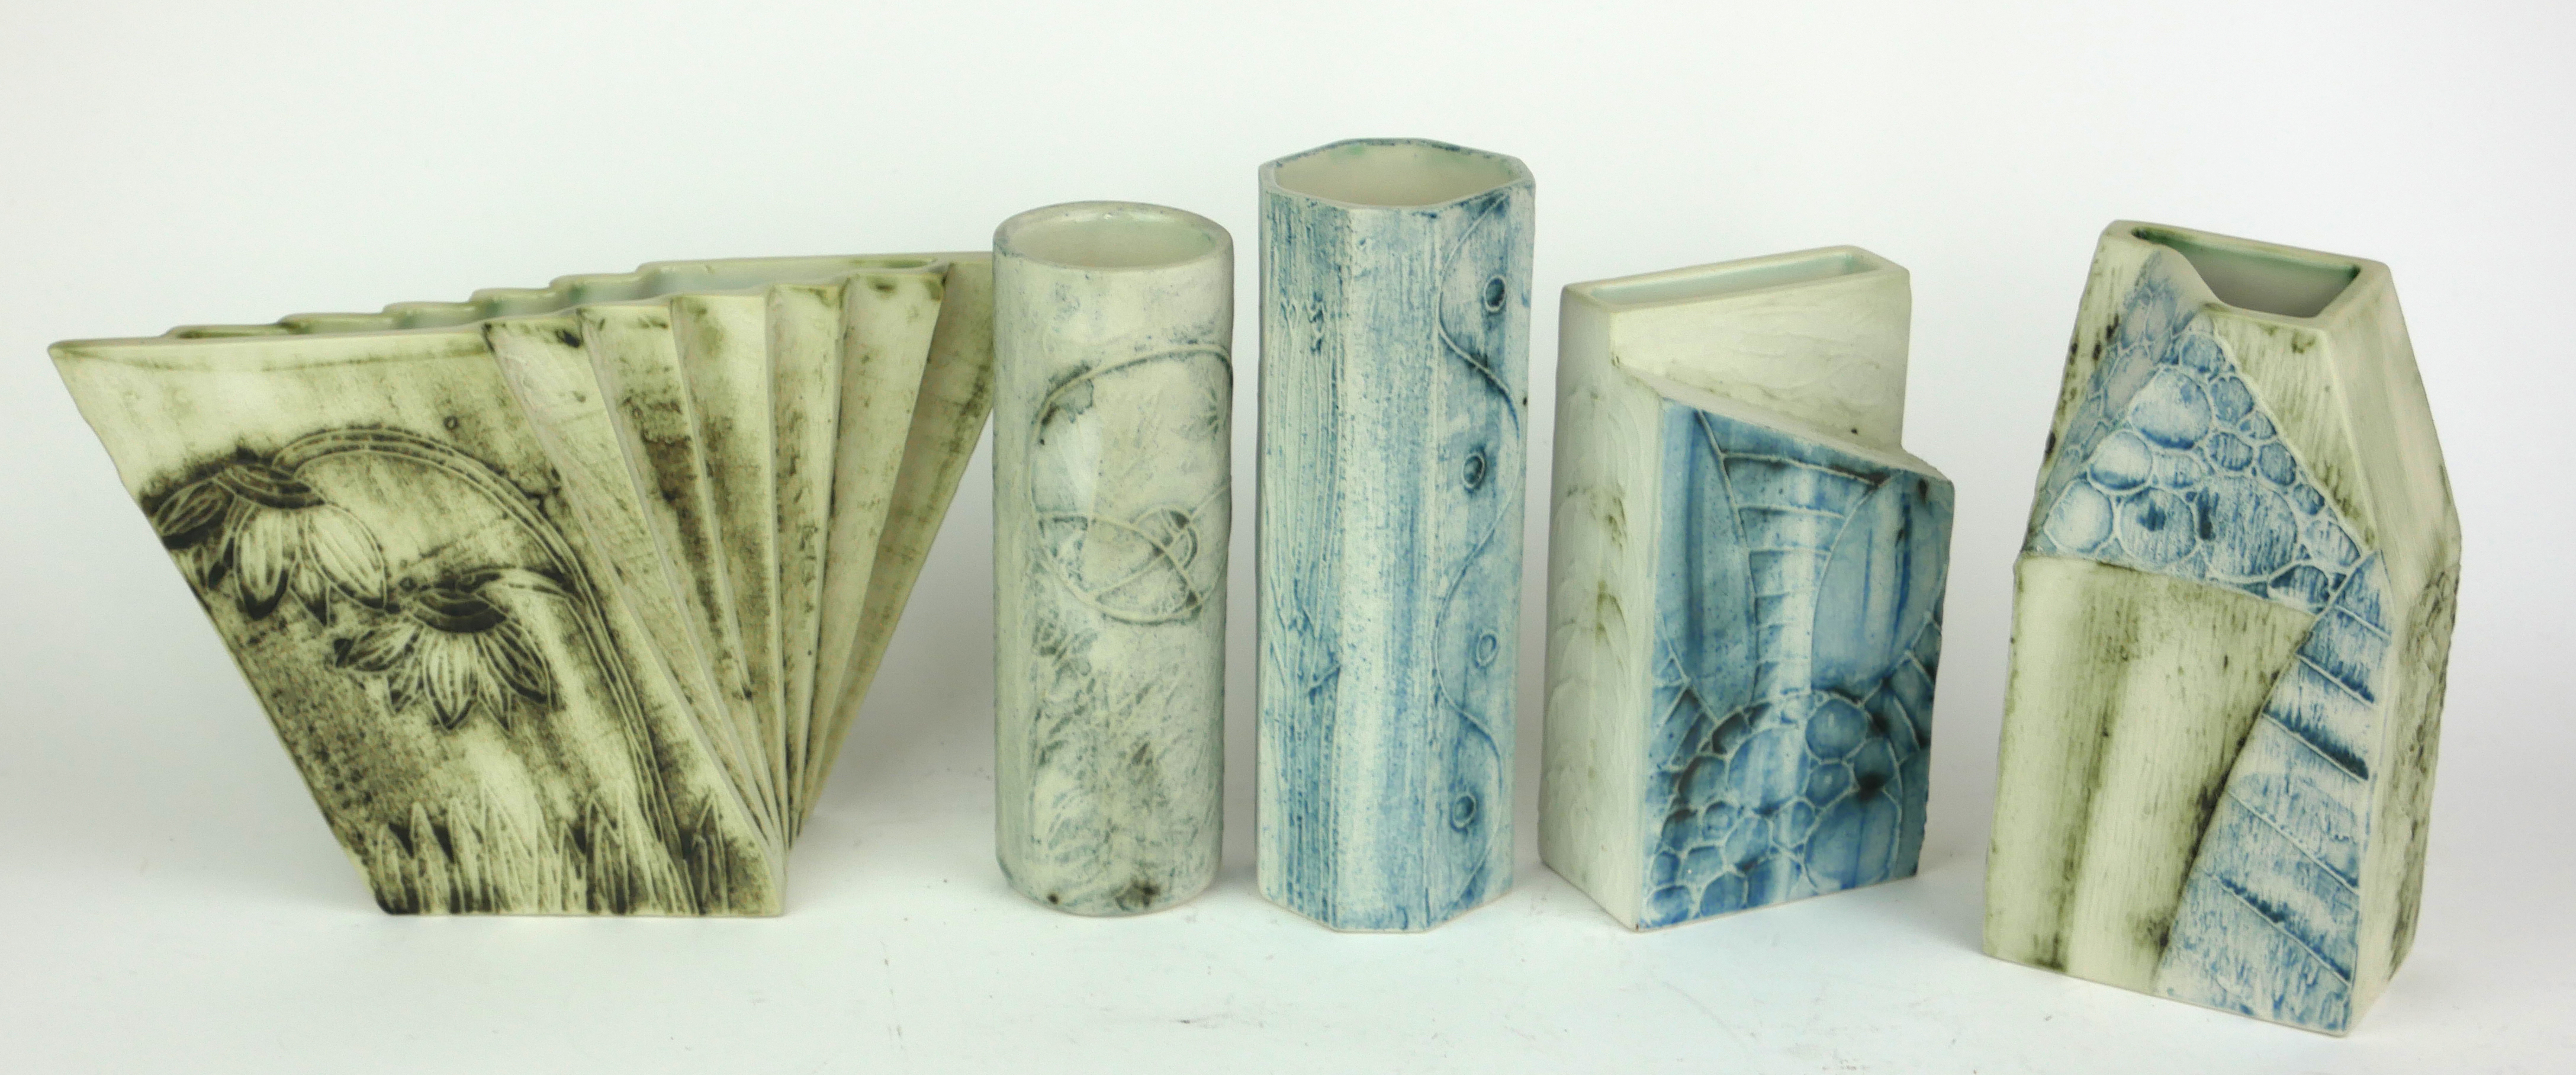 A COLLECTION OF MID 20TH CENTURY CORNISH ART POTTERY VASES Geometric form with blue/green